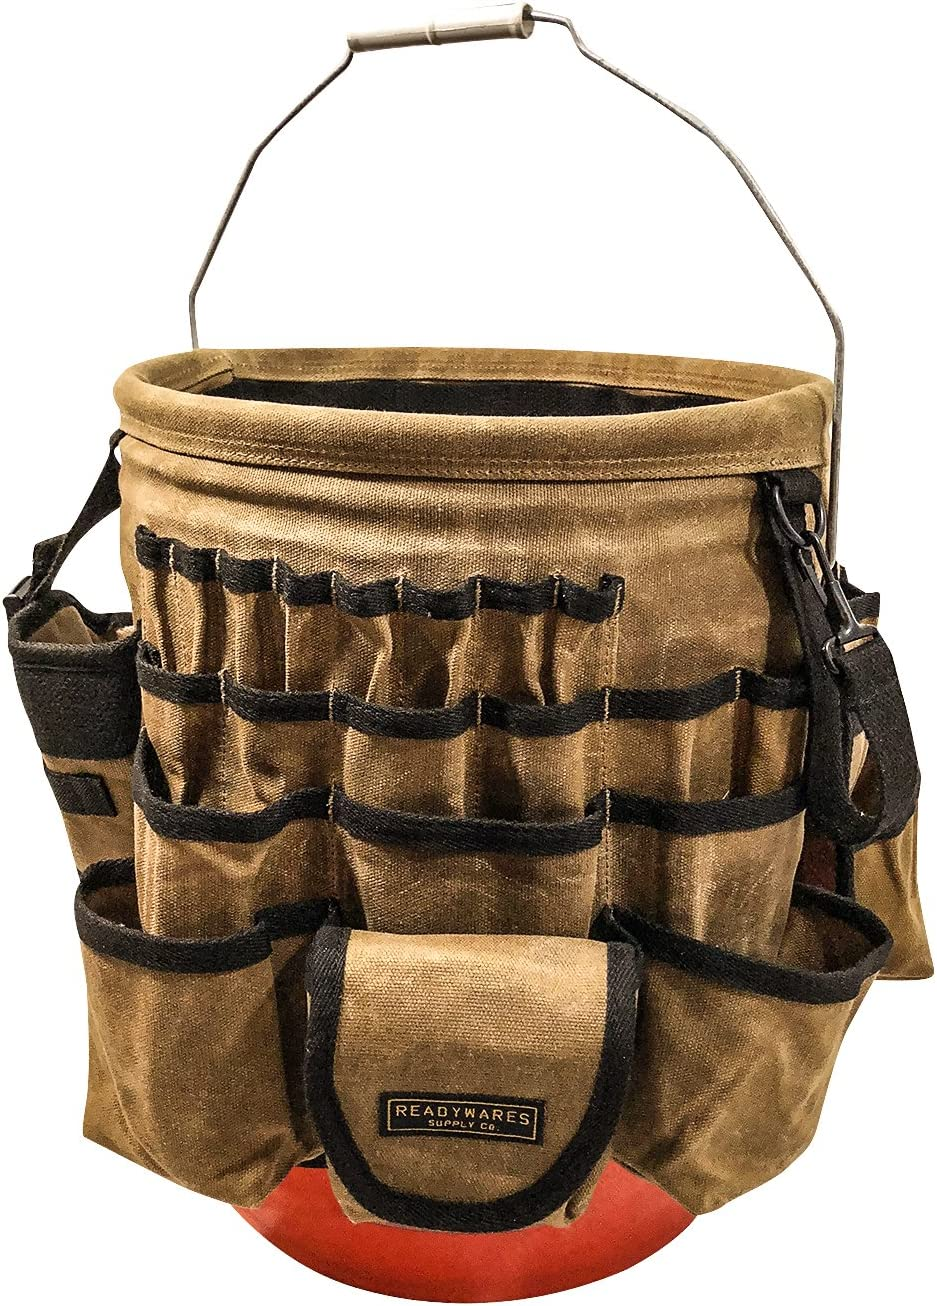 Readywares Waxed Canvas Popular products Organizer Tool Shipping included Bucket